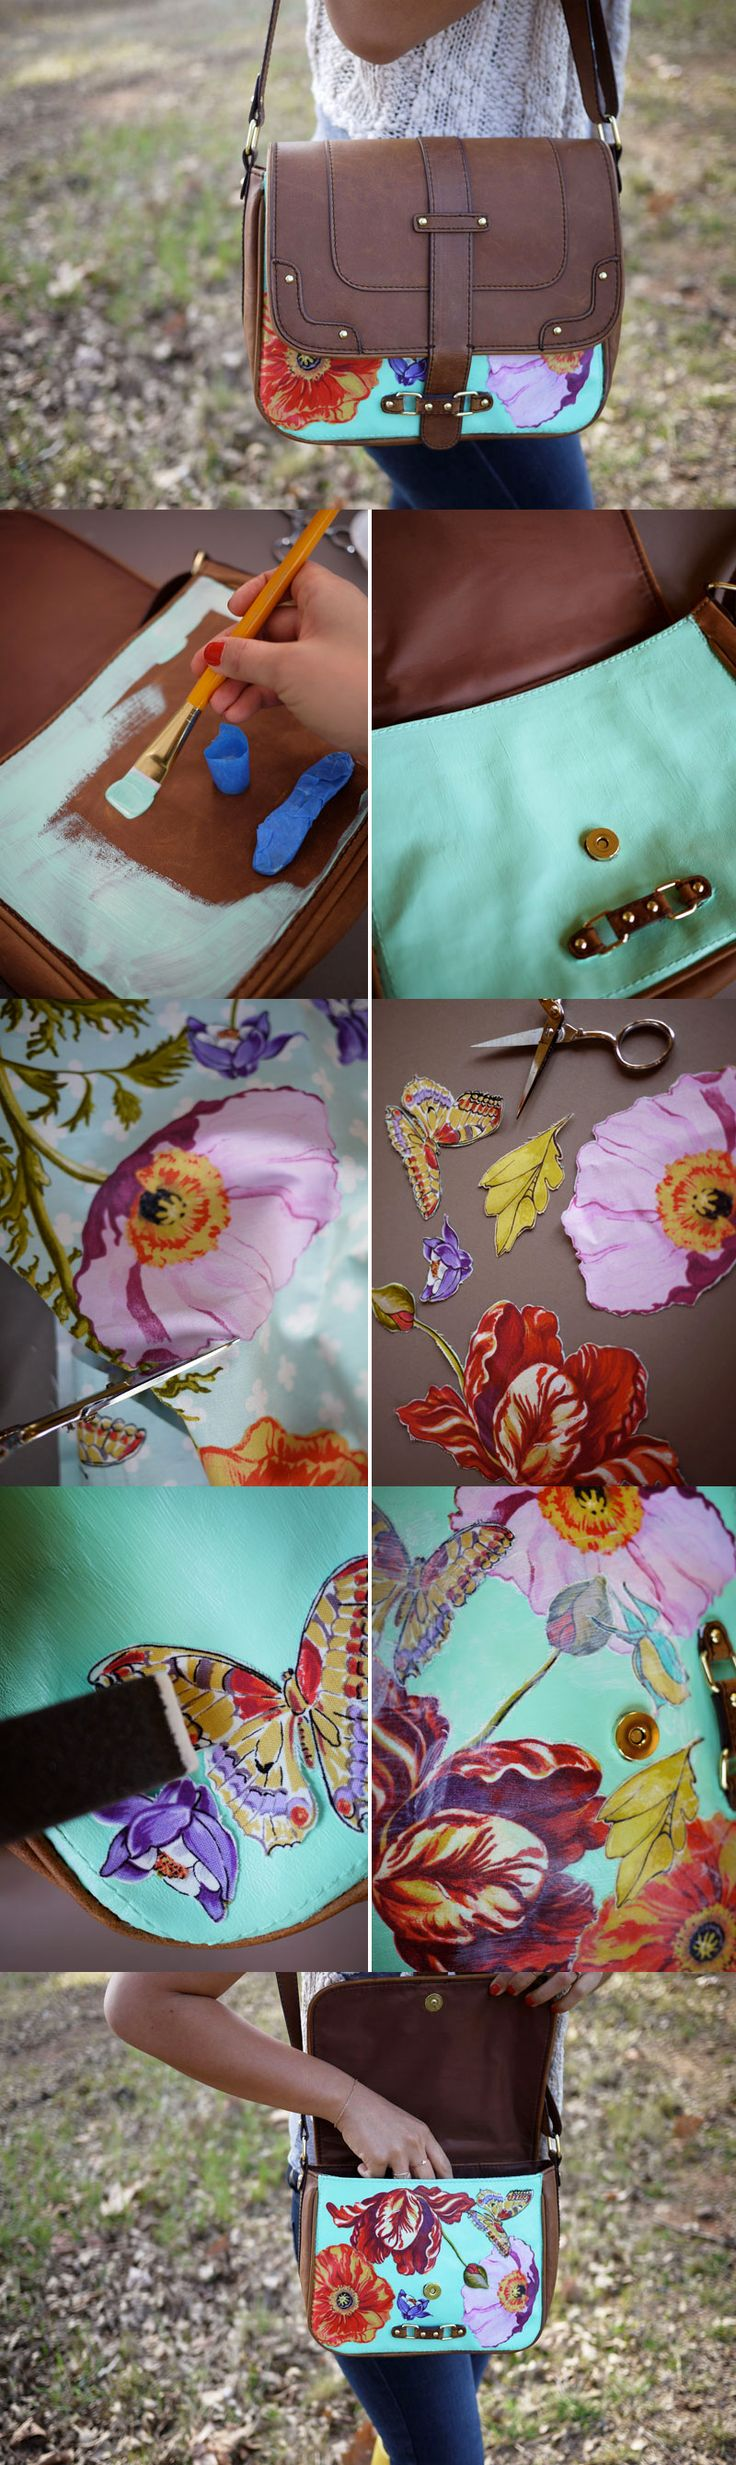 DIY Découpage Floral Bag Tutorial                                                                                                                                                      More